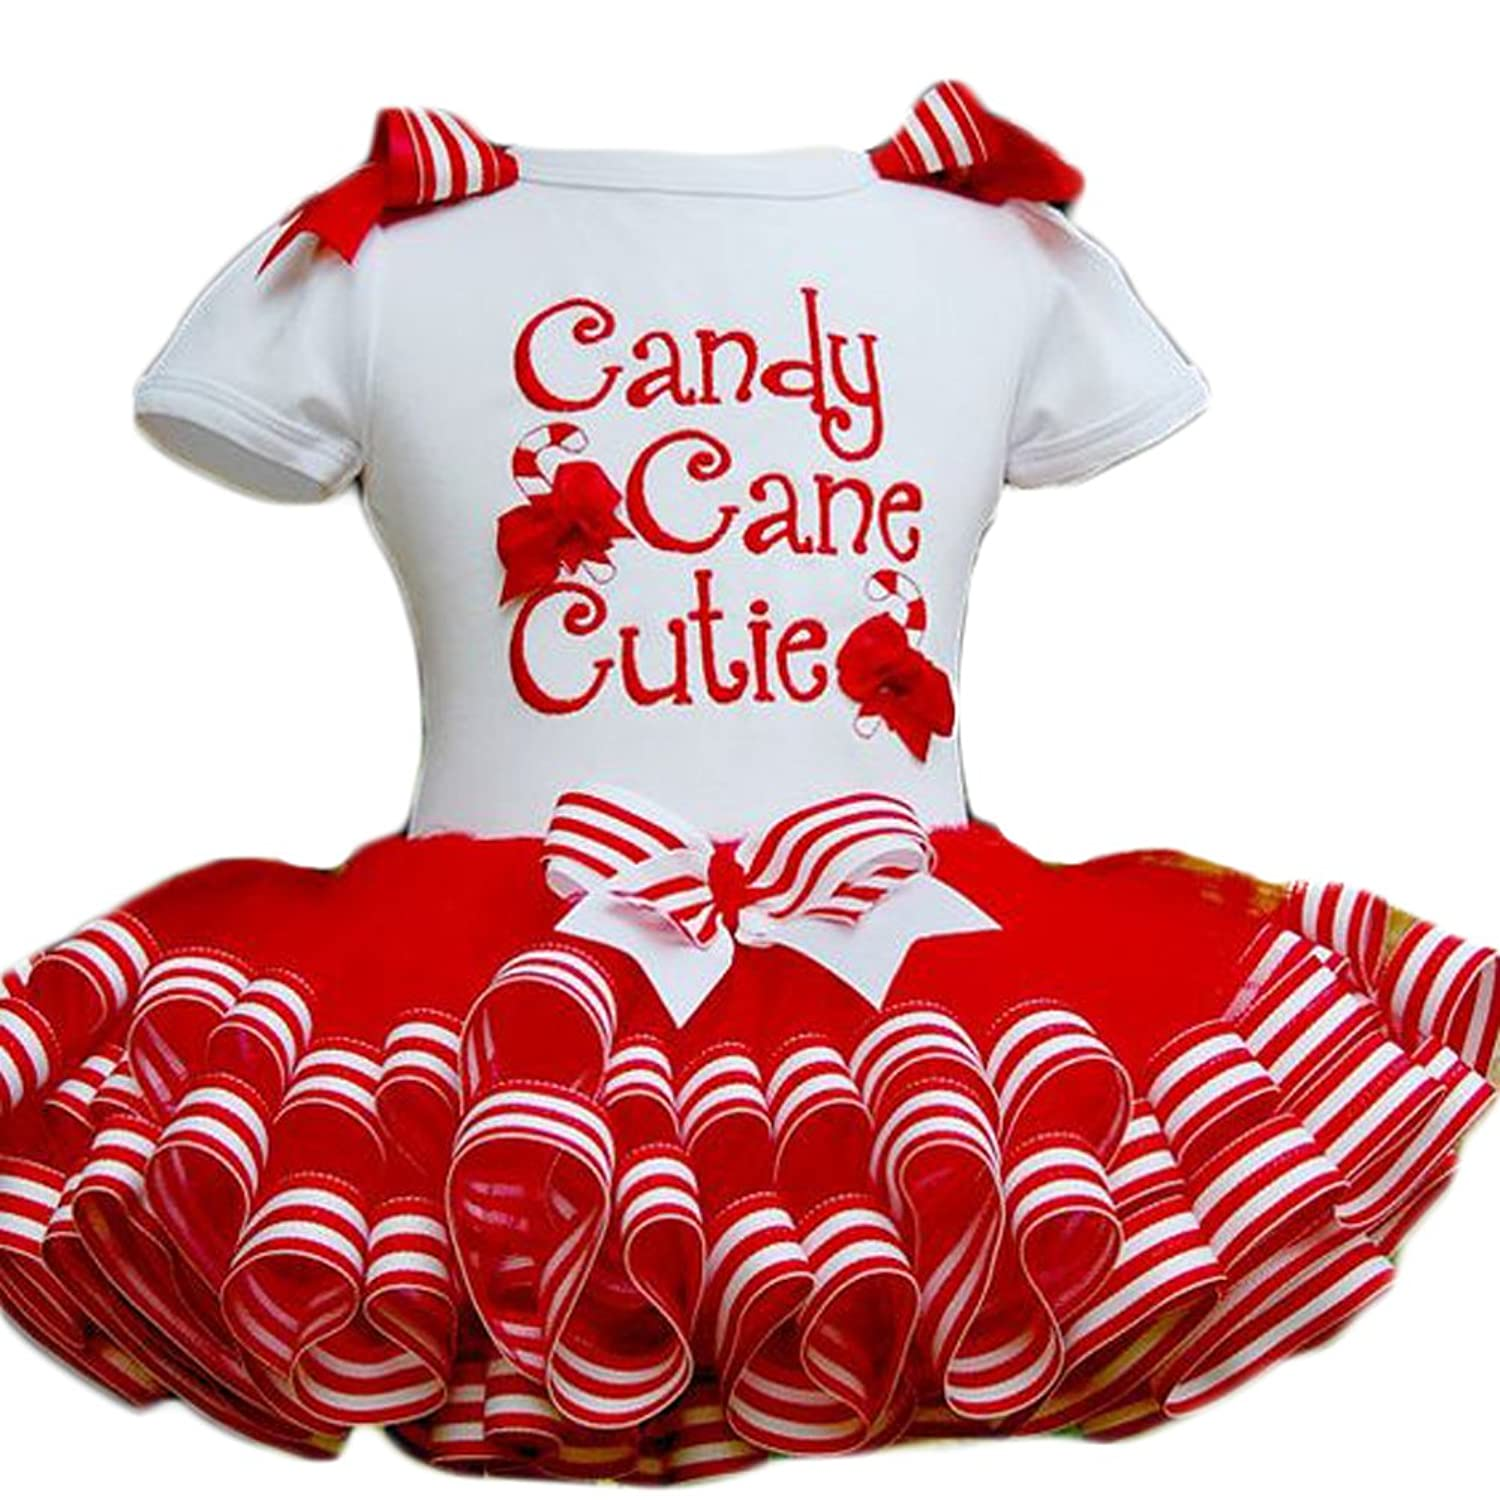 Amazon.com Charm Kingdom Little Girls Christmas Holiday Candy Cane Cutie Tutu Dress Clothing  sc 1 st  Amazon.com & Amazon.com: Charm Kingdom Little Girls Christmas Holiday Candy Cane ...